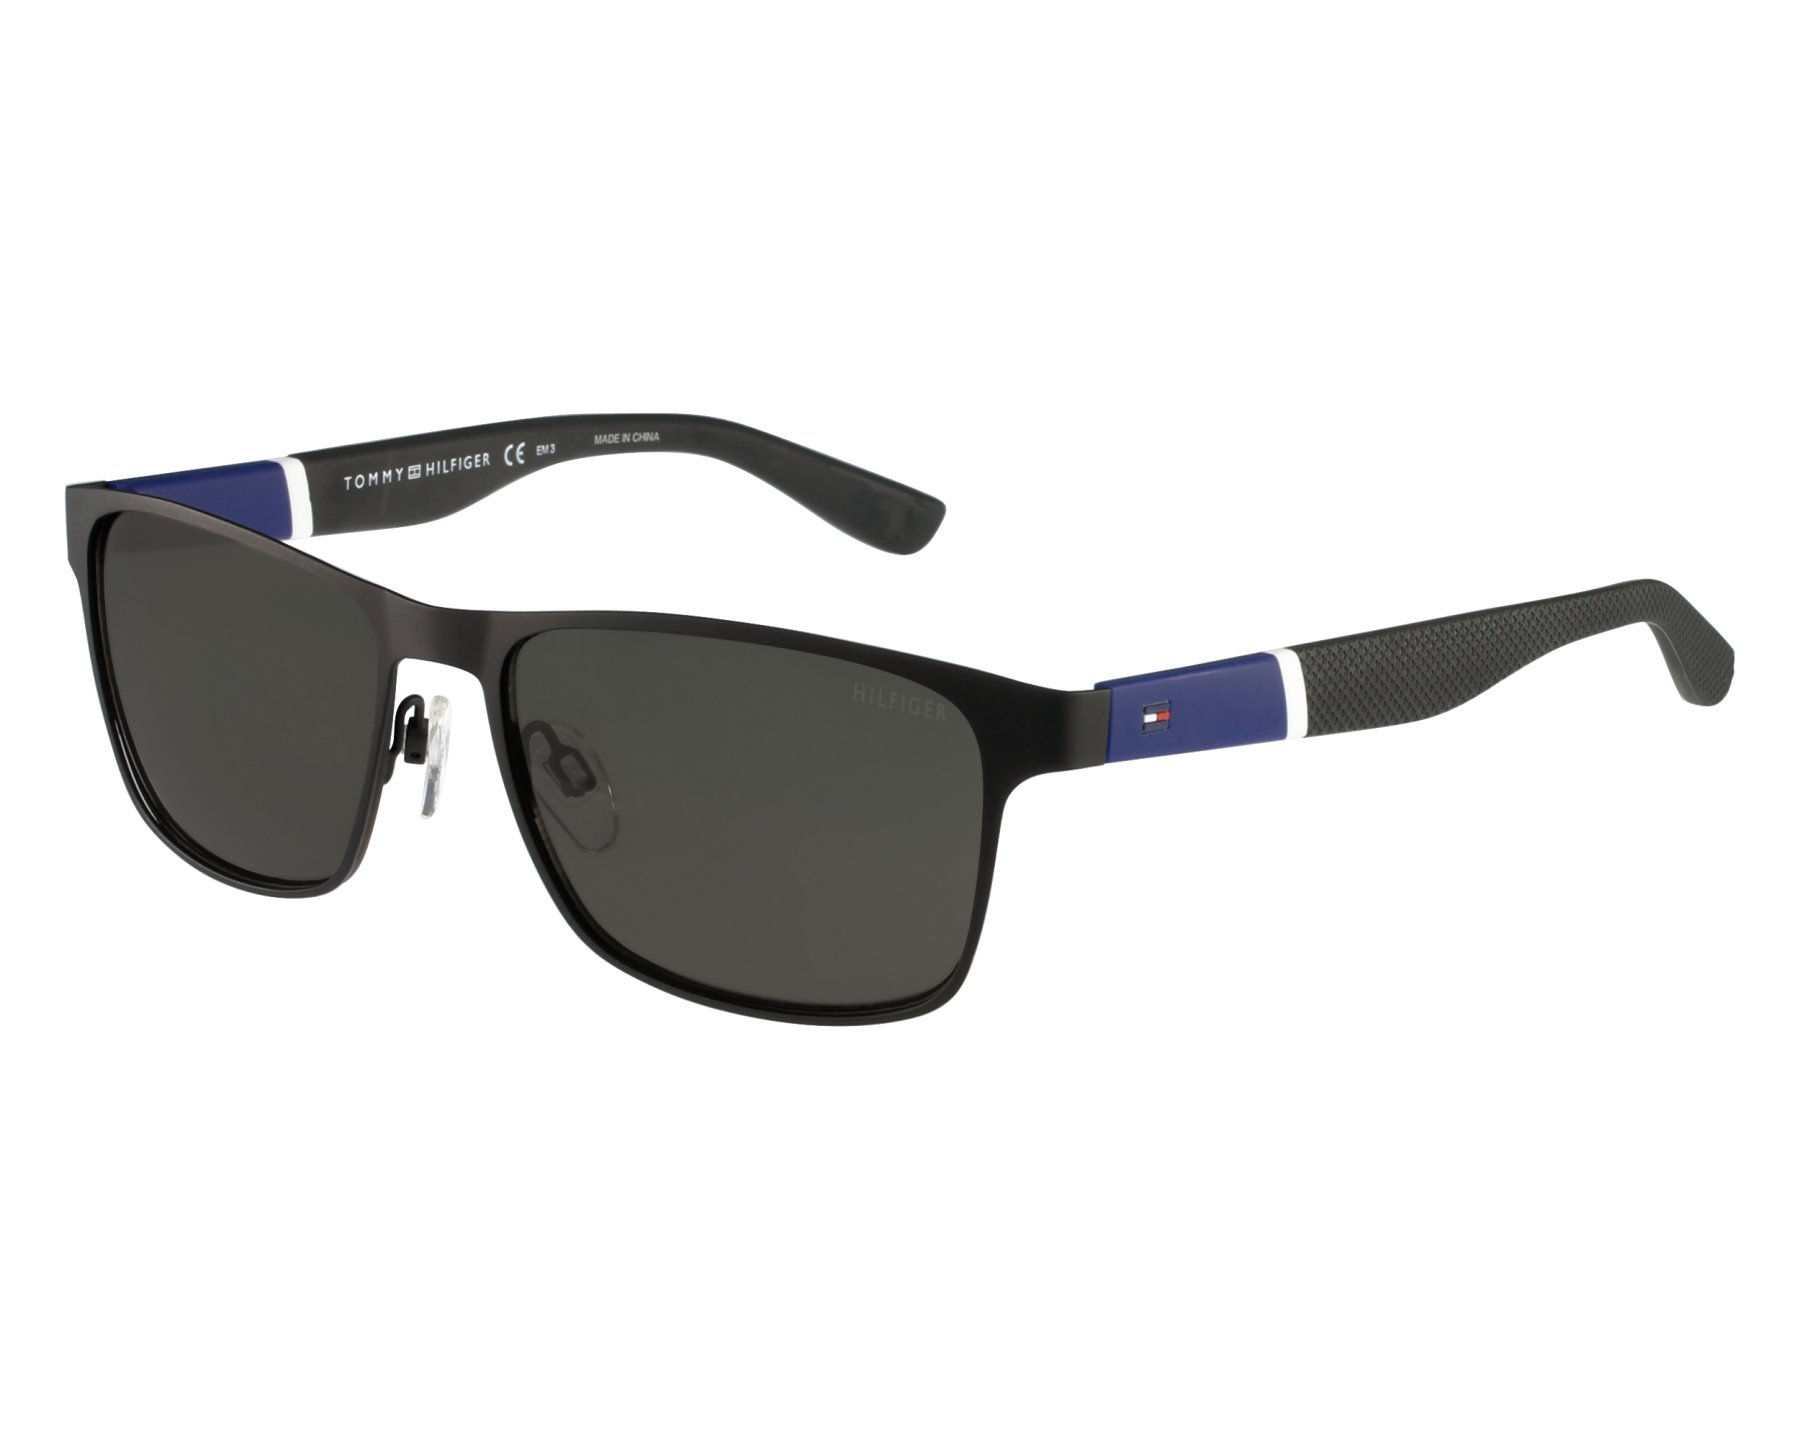 3d01080cf3 Sunglasses Tommy Hilfiger TH-1283-S FO3 NR - Black Blue front view